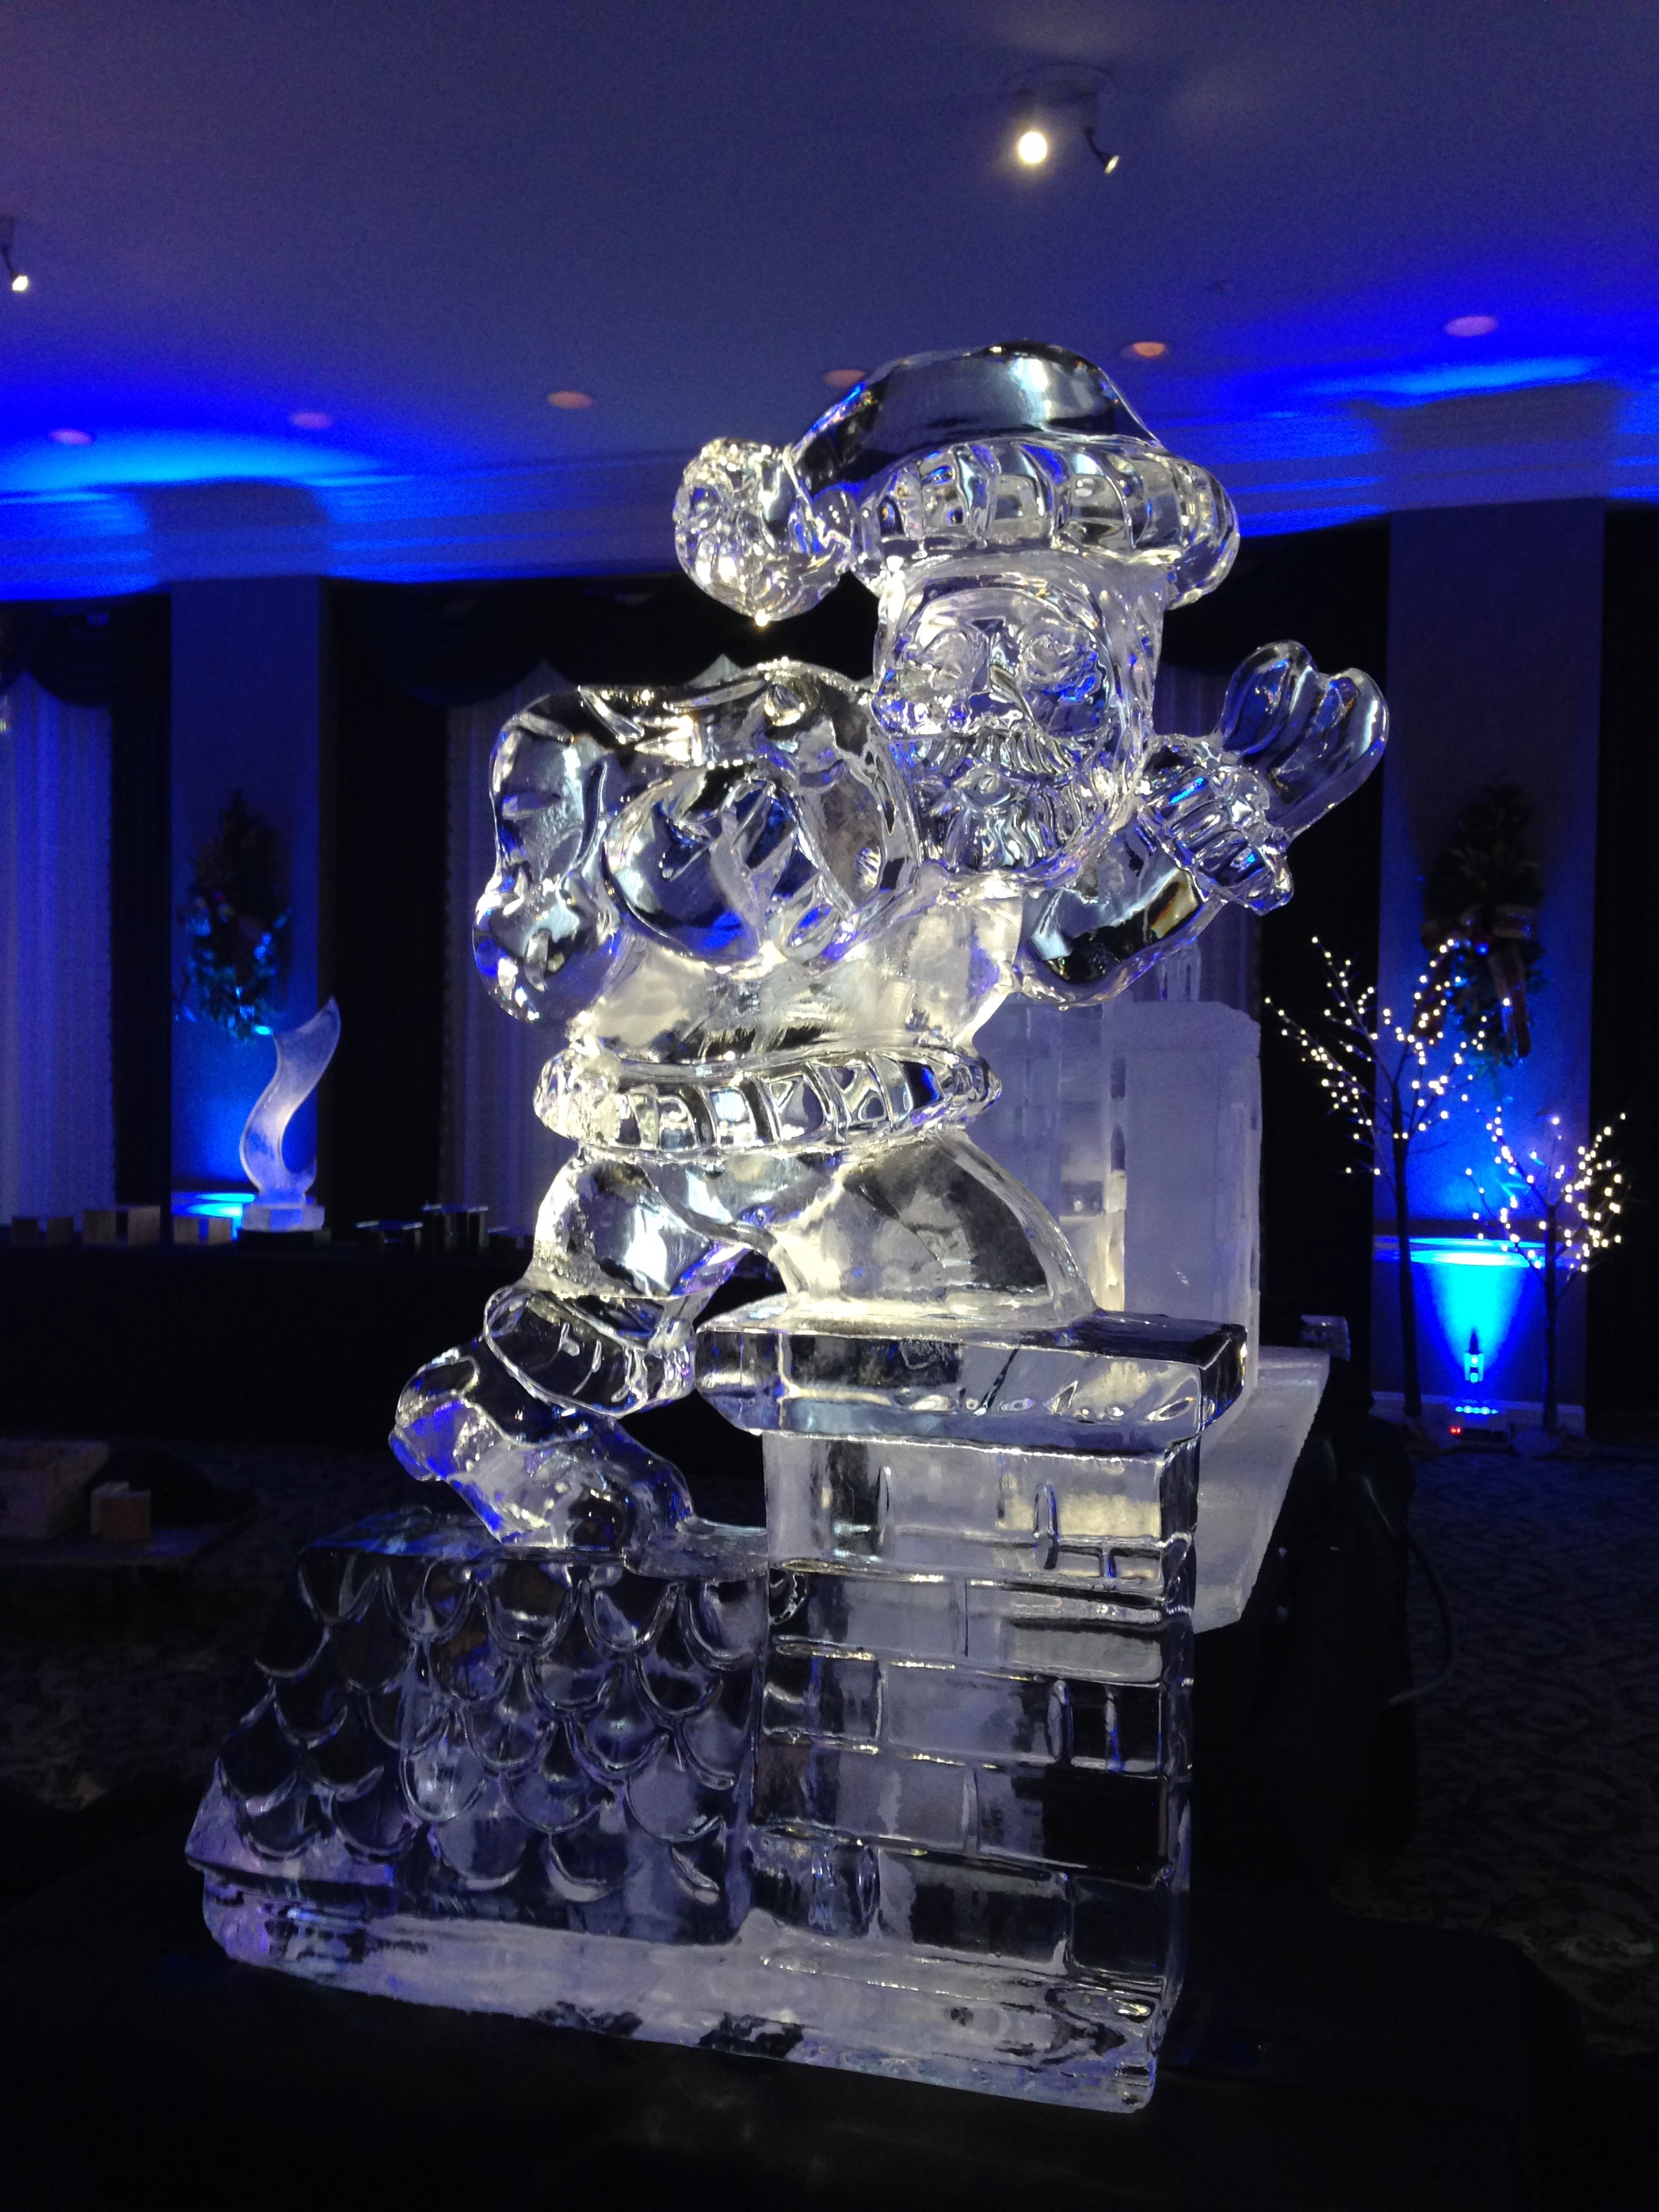 Santa Clause ice sculpture